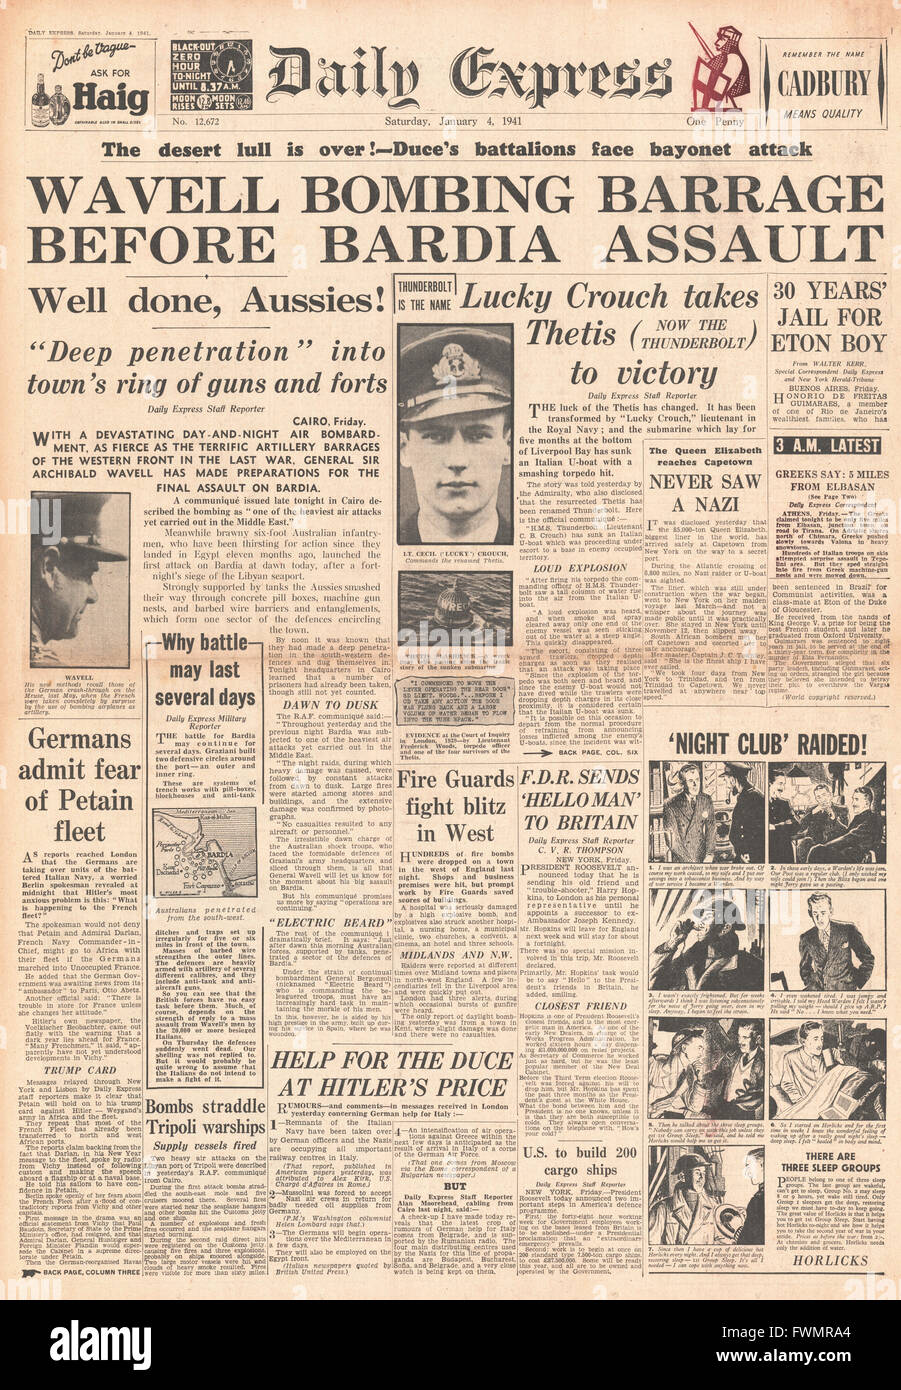 1941 front page Daily Express General Wavell and Allies bombard Bardia and HMS Thunderbolt torpedo's and sinks - Stock Image